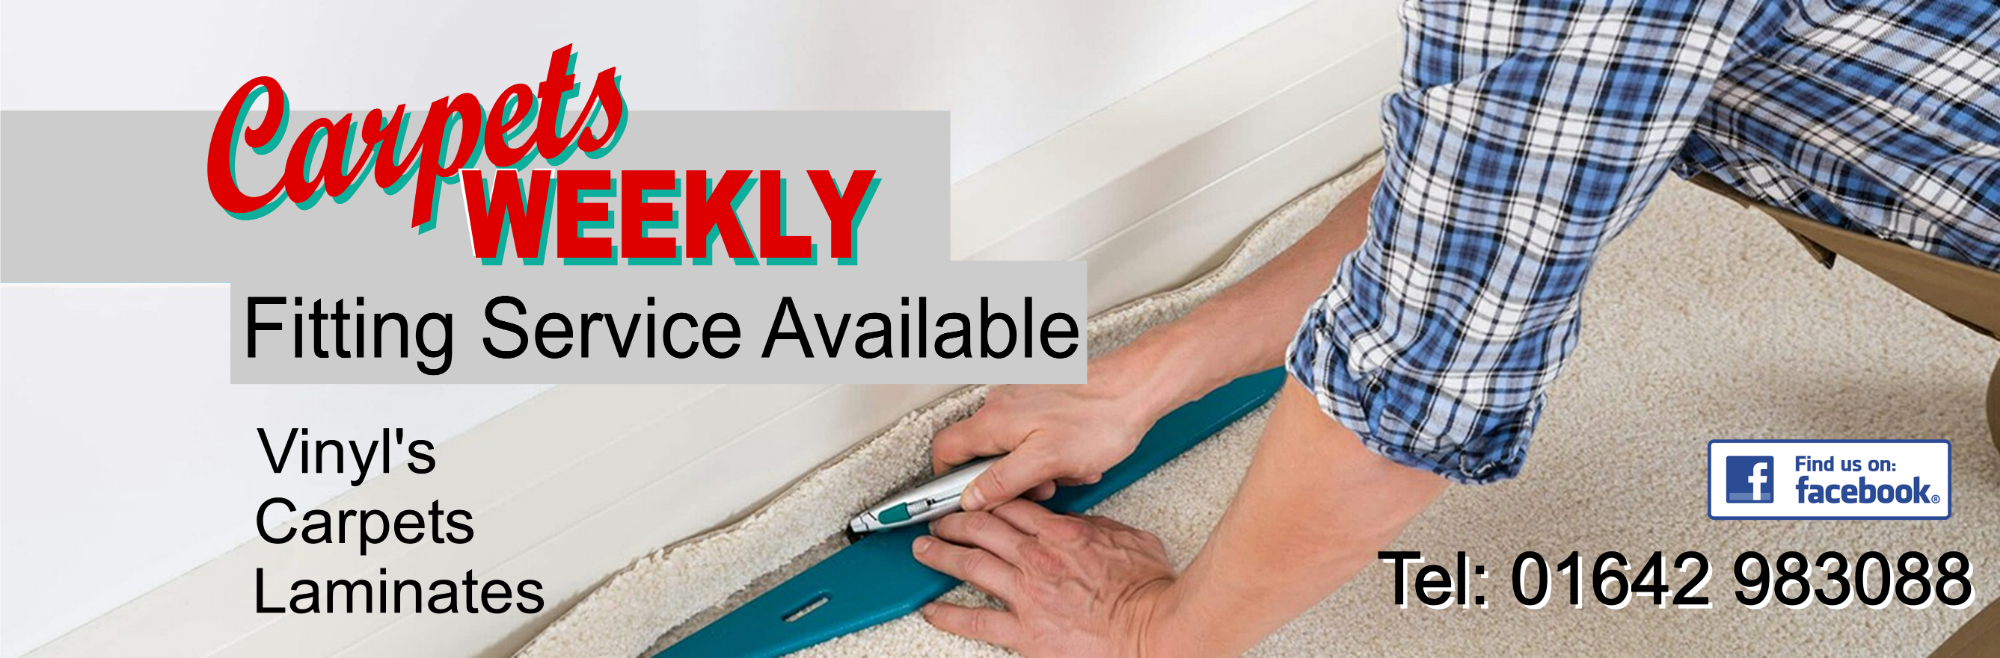 Full fitting Service Available from Carpets Weekly